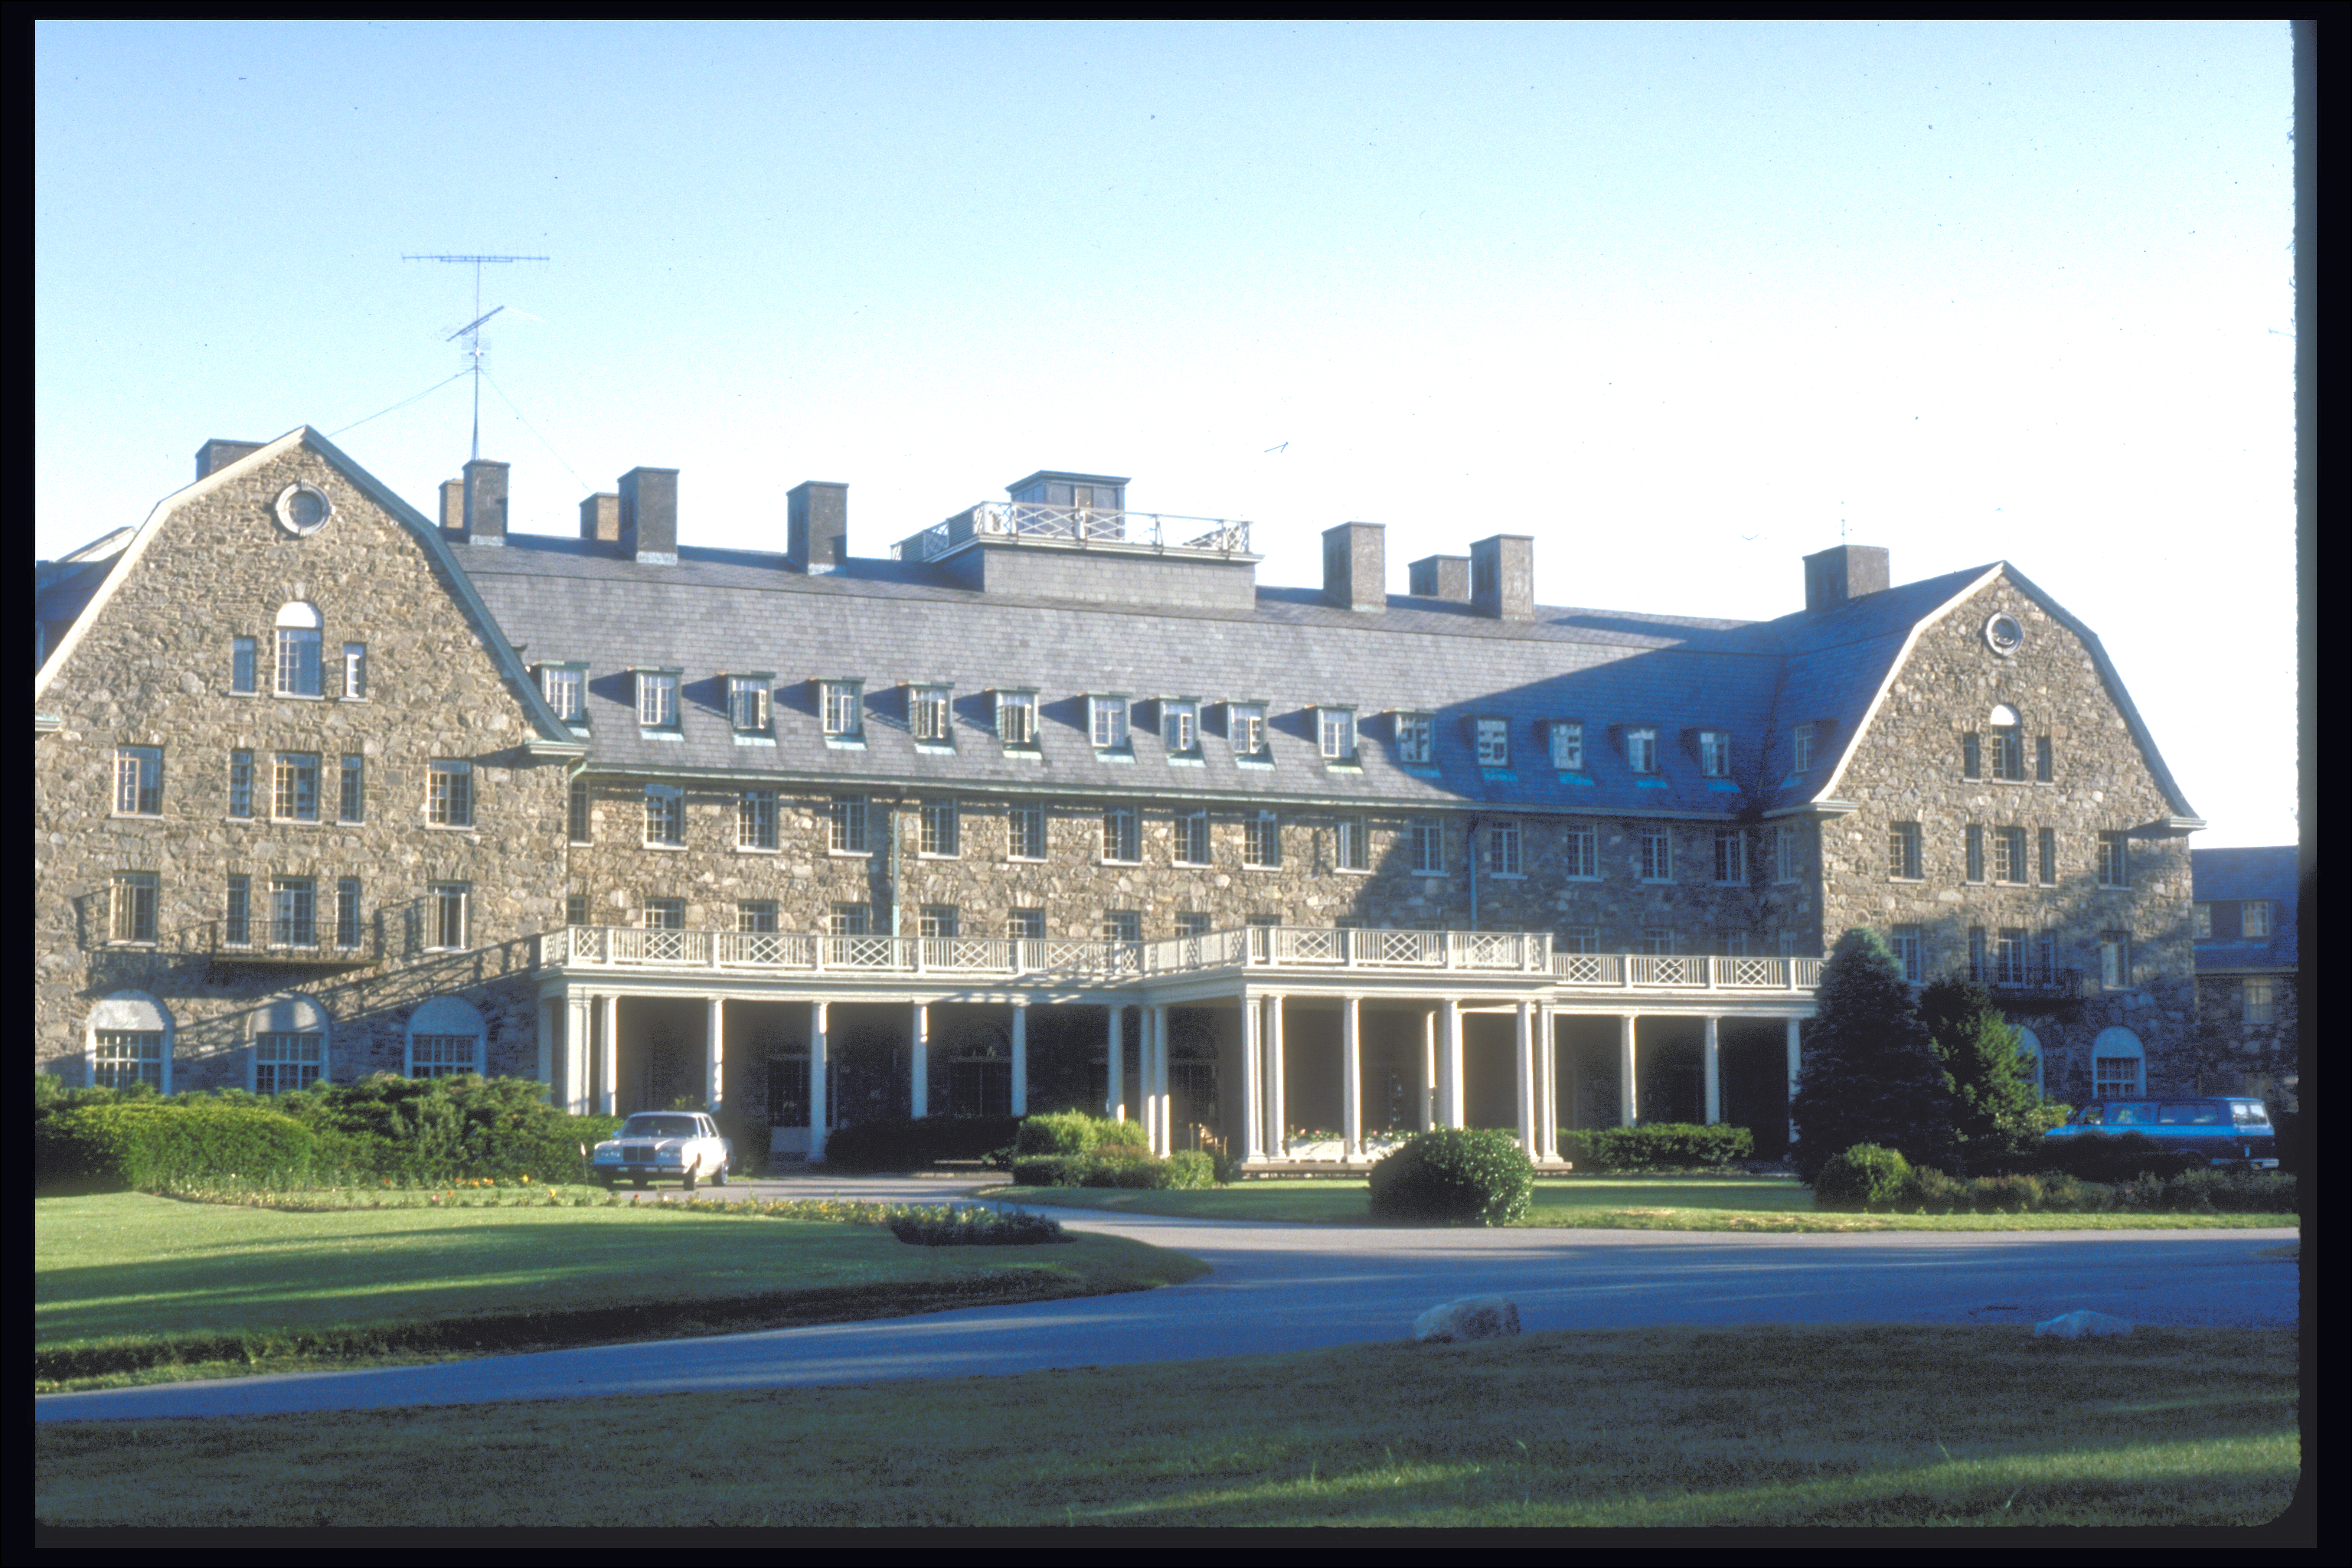 Pocono Mountains: AI Conference Venue, mid-1980's